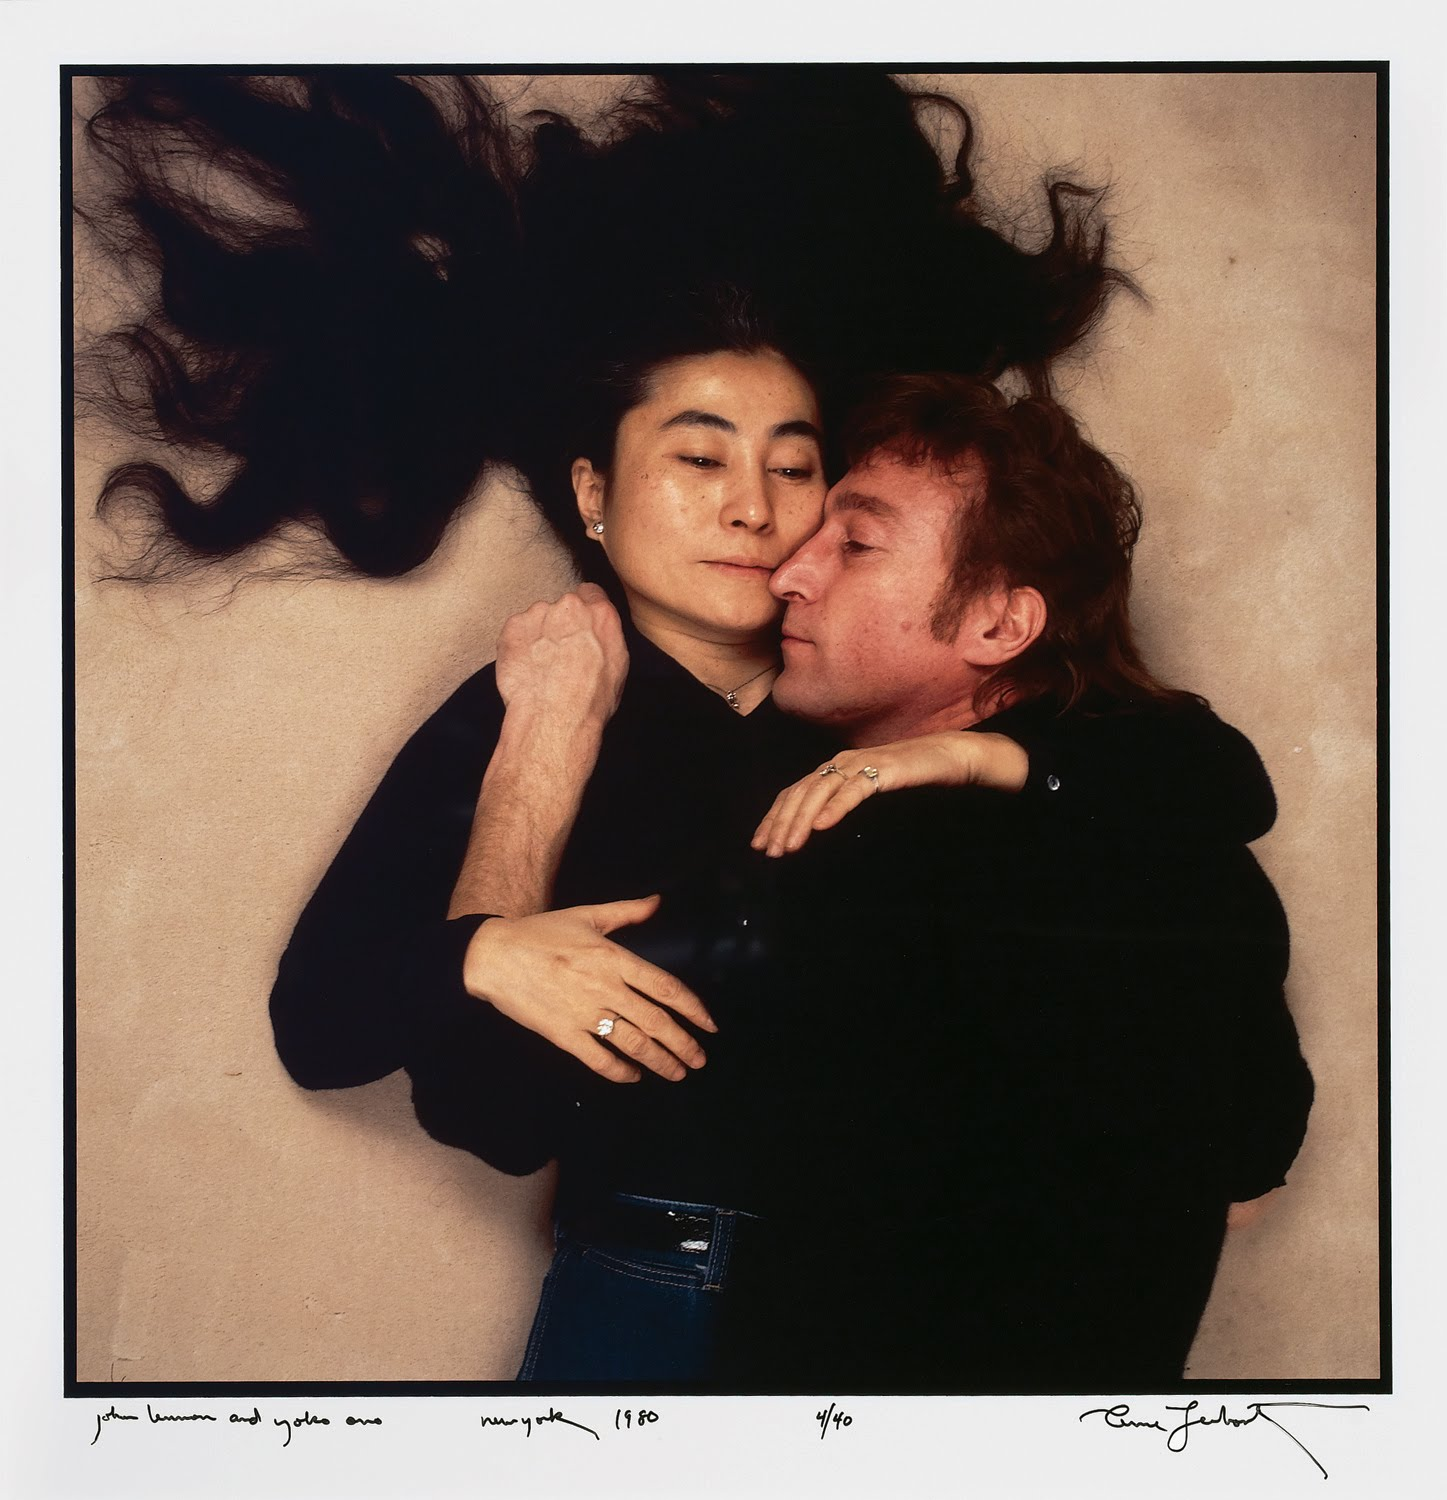 John Lennon e Yoko Ono in uno scatto di Annie Leibovitz, reso famoso dalla versione senza abiti. John Lennon and Yoko Ono, by Annie Liebovitz cult stories cult stories cultstories cinema cult story cultstory art culture music ipse dixit aneddoti citazioni frasi famose aforismi immagini foto personaggi cultura musica storie facts fatti celebrità vip cult spettacoli live performance concerto photo photography celebrity giornalismo scrittura libri genio pop icon attore cantante solista pittrice scultore attrice star diva sex symbol mito